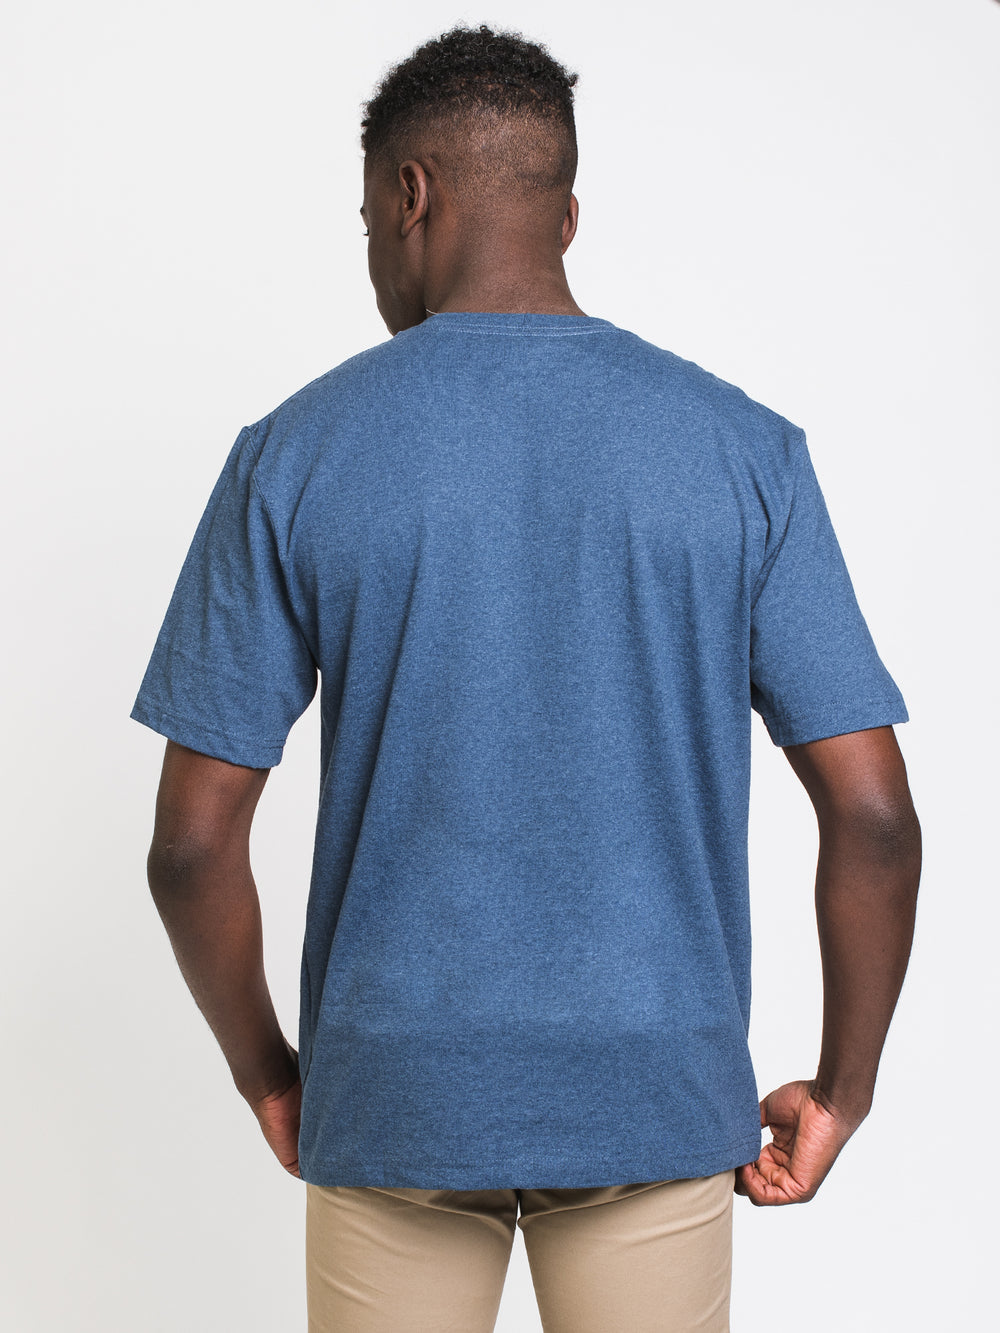 MENS WORKWEAR POCKET SHORT SLEEVE TEE - COBALT